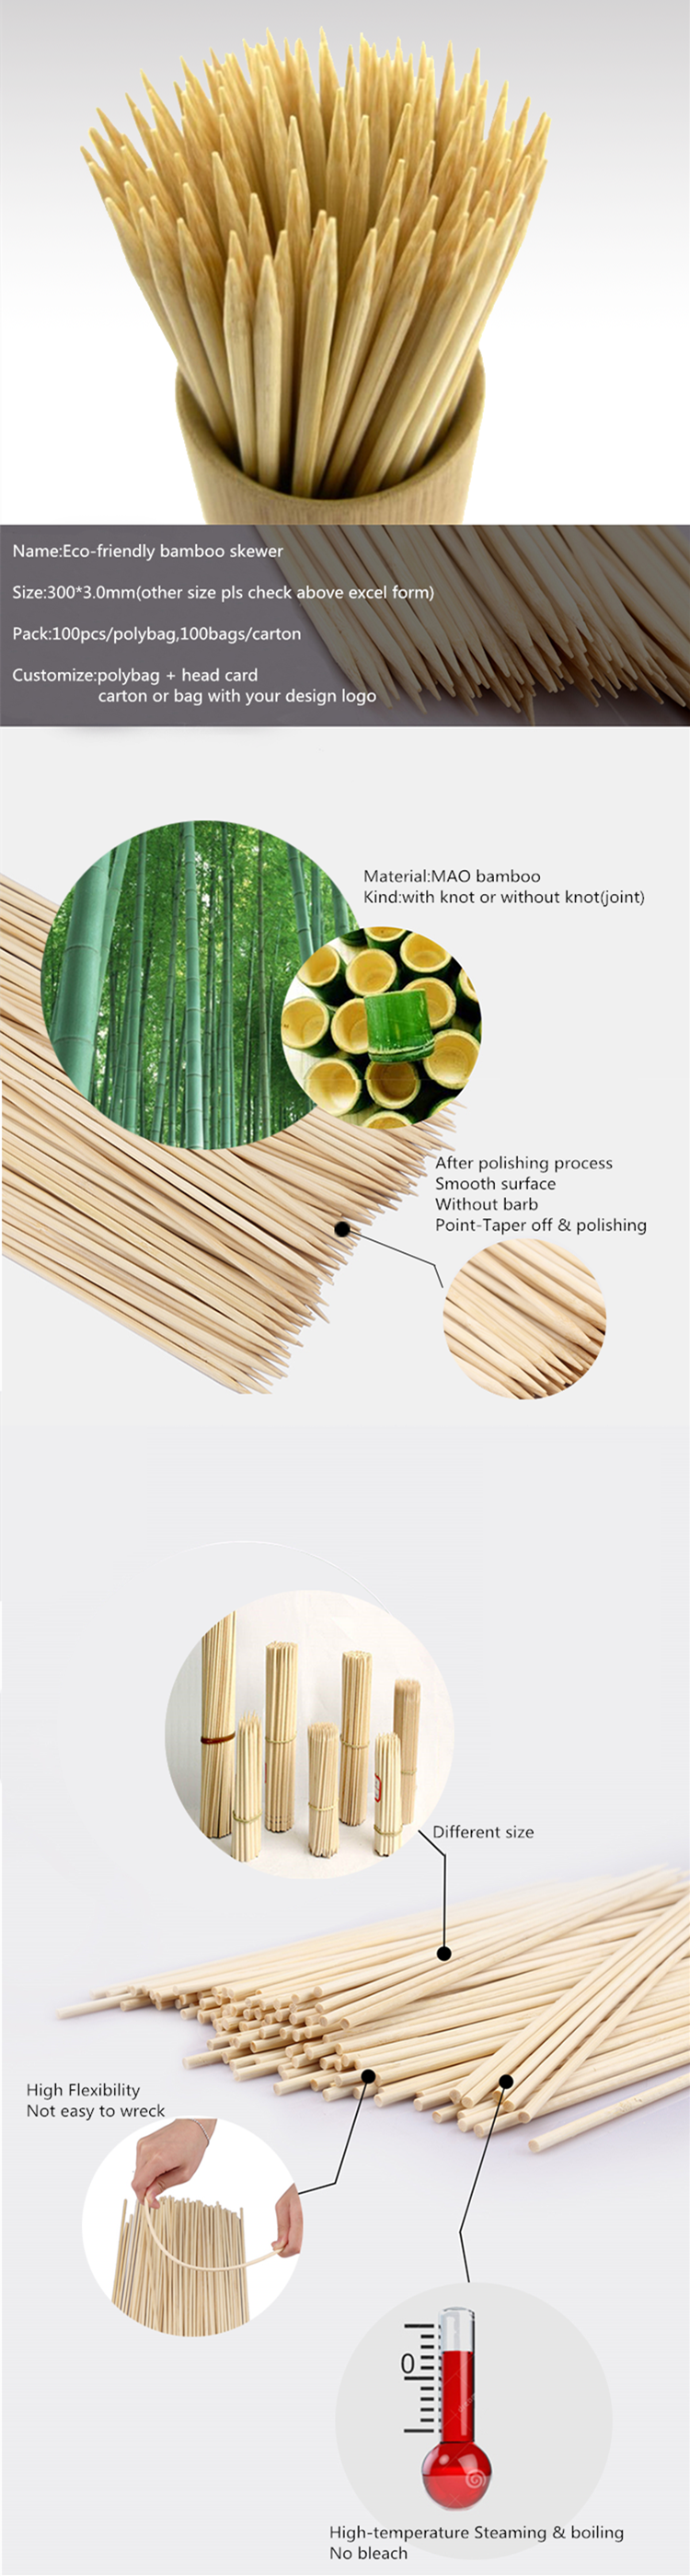 Outdoor Disposable Chinese Factory Bamboo BBQ Bamboo Skewer For Picnic